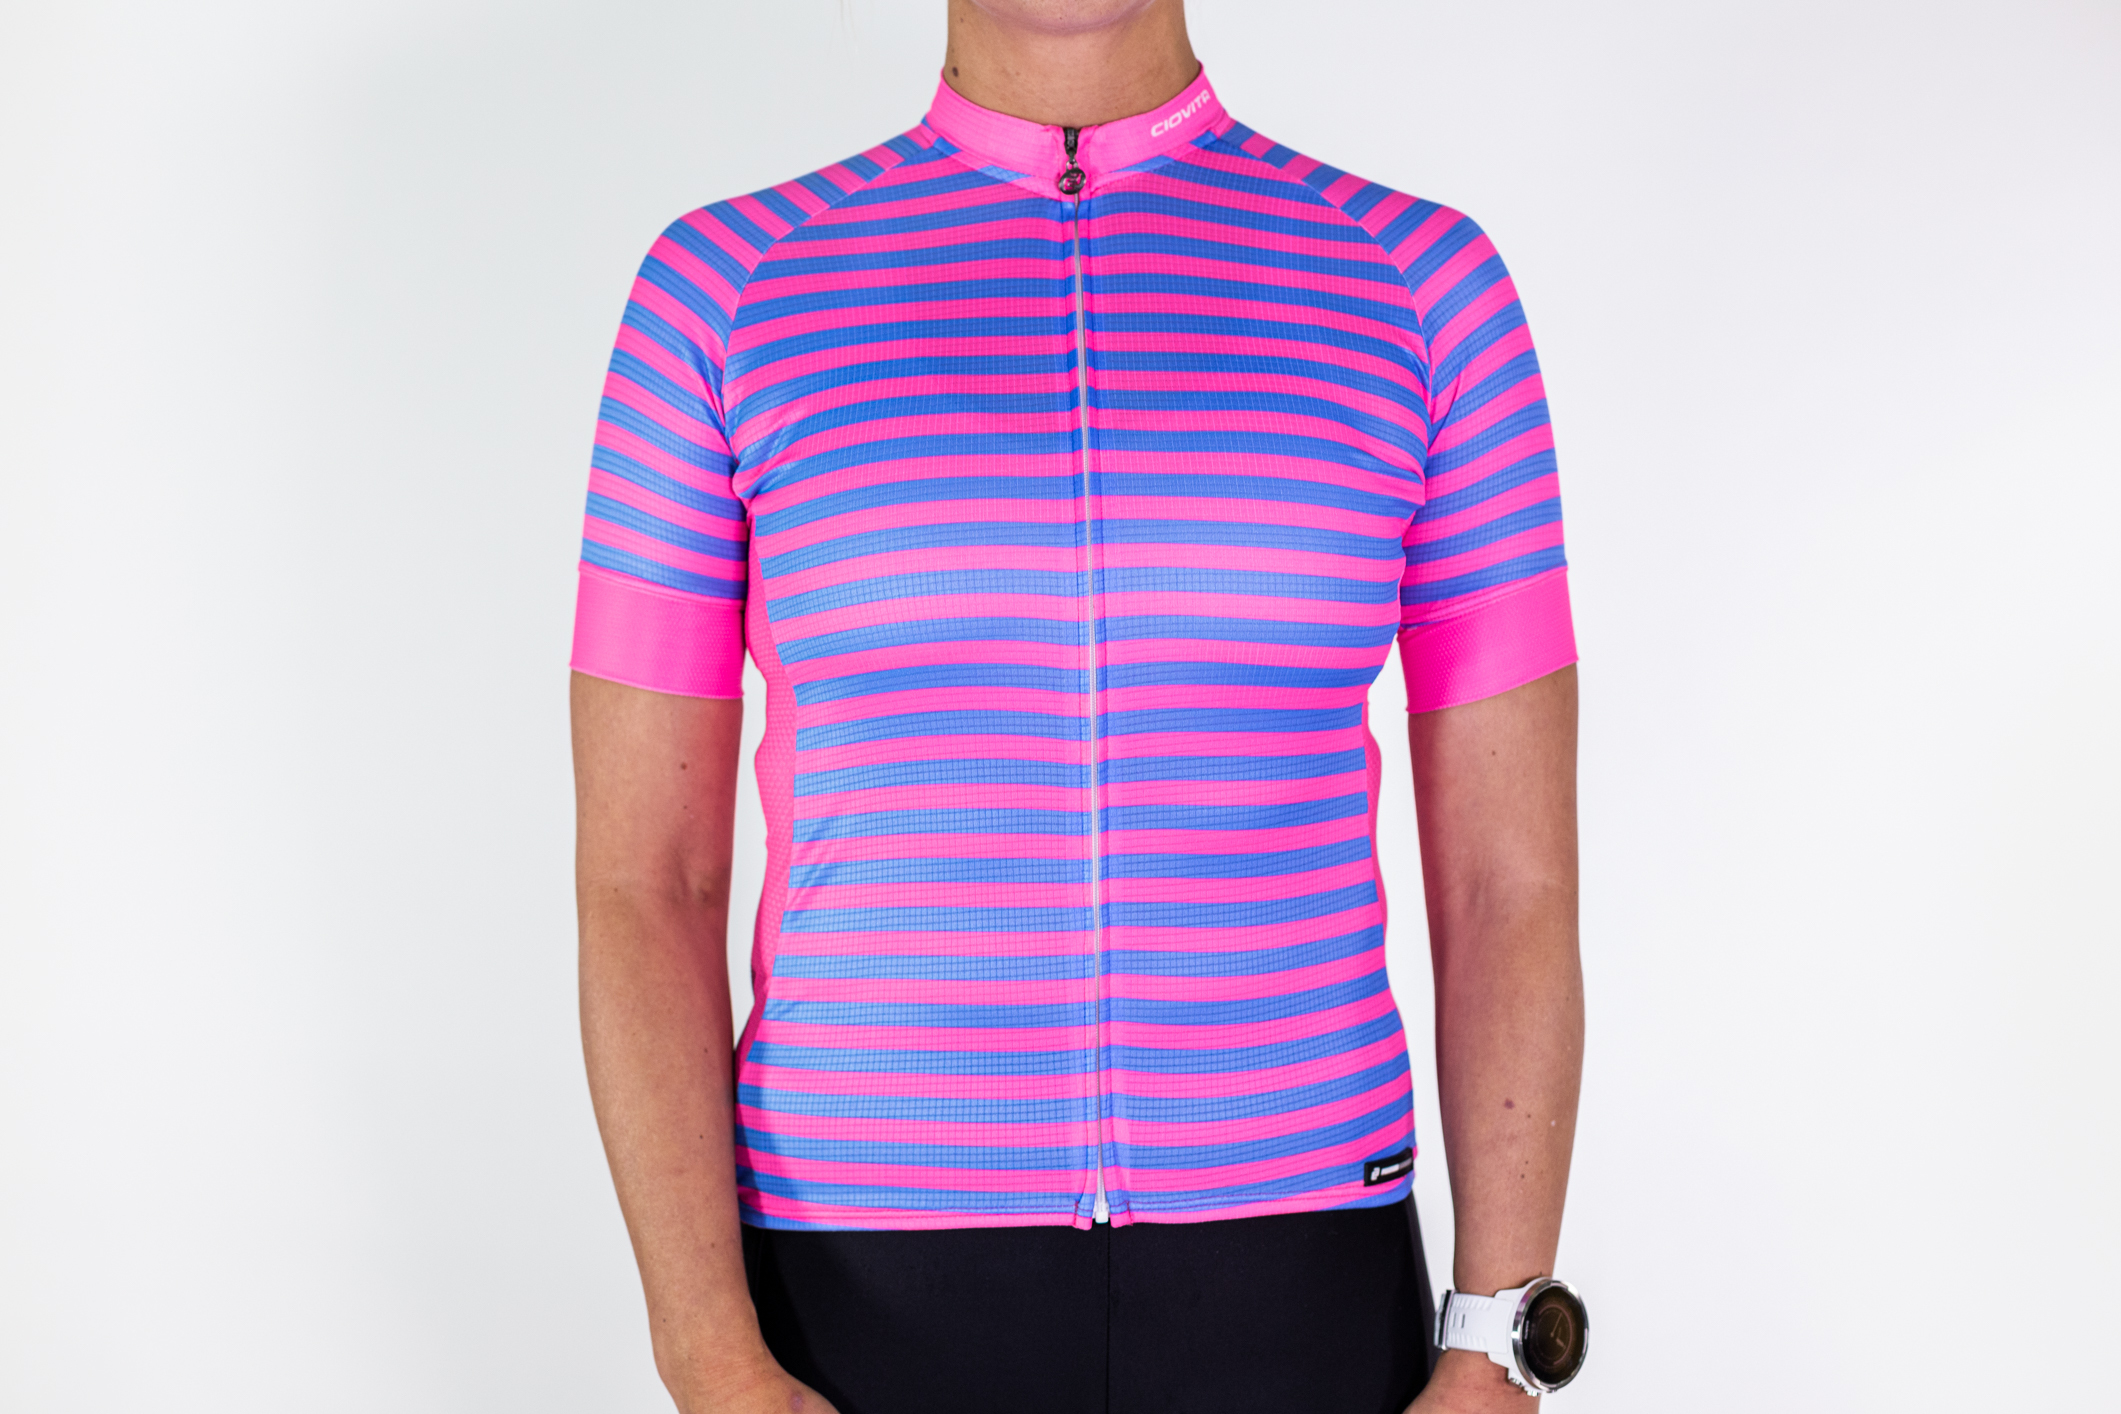 Sportsfit Pink & Blue Cycling Jersey P001